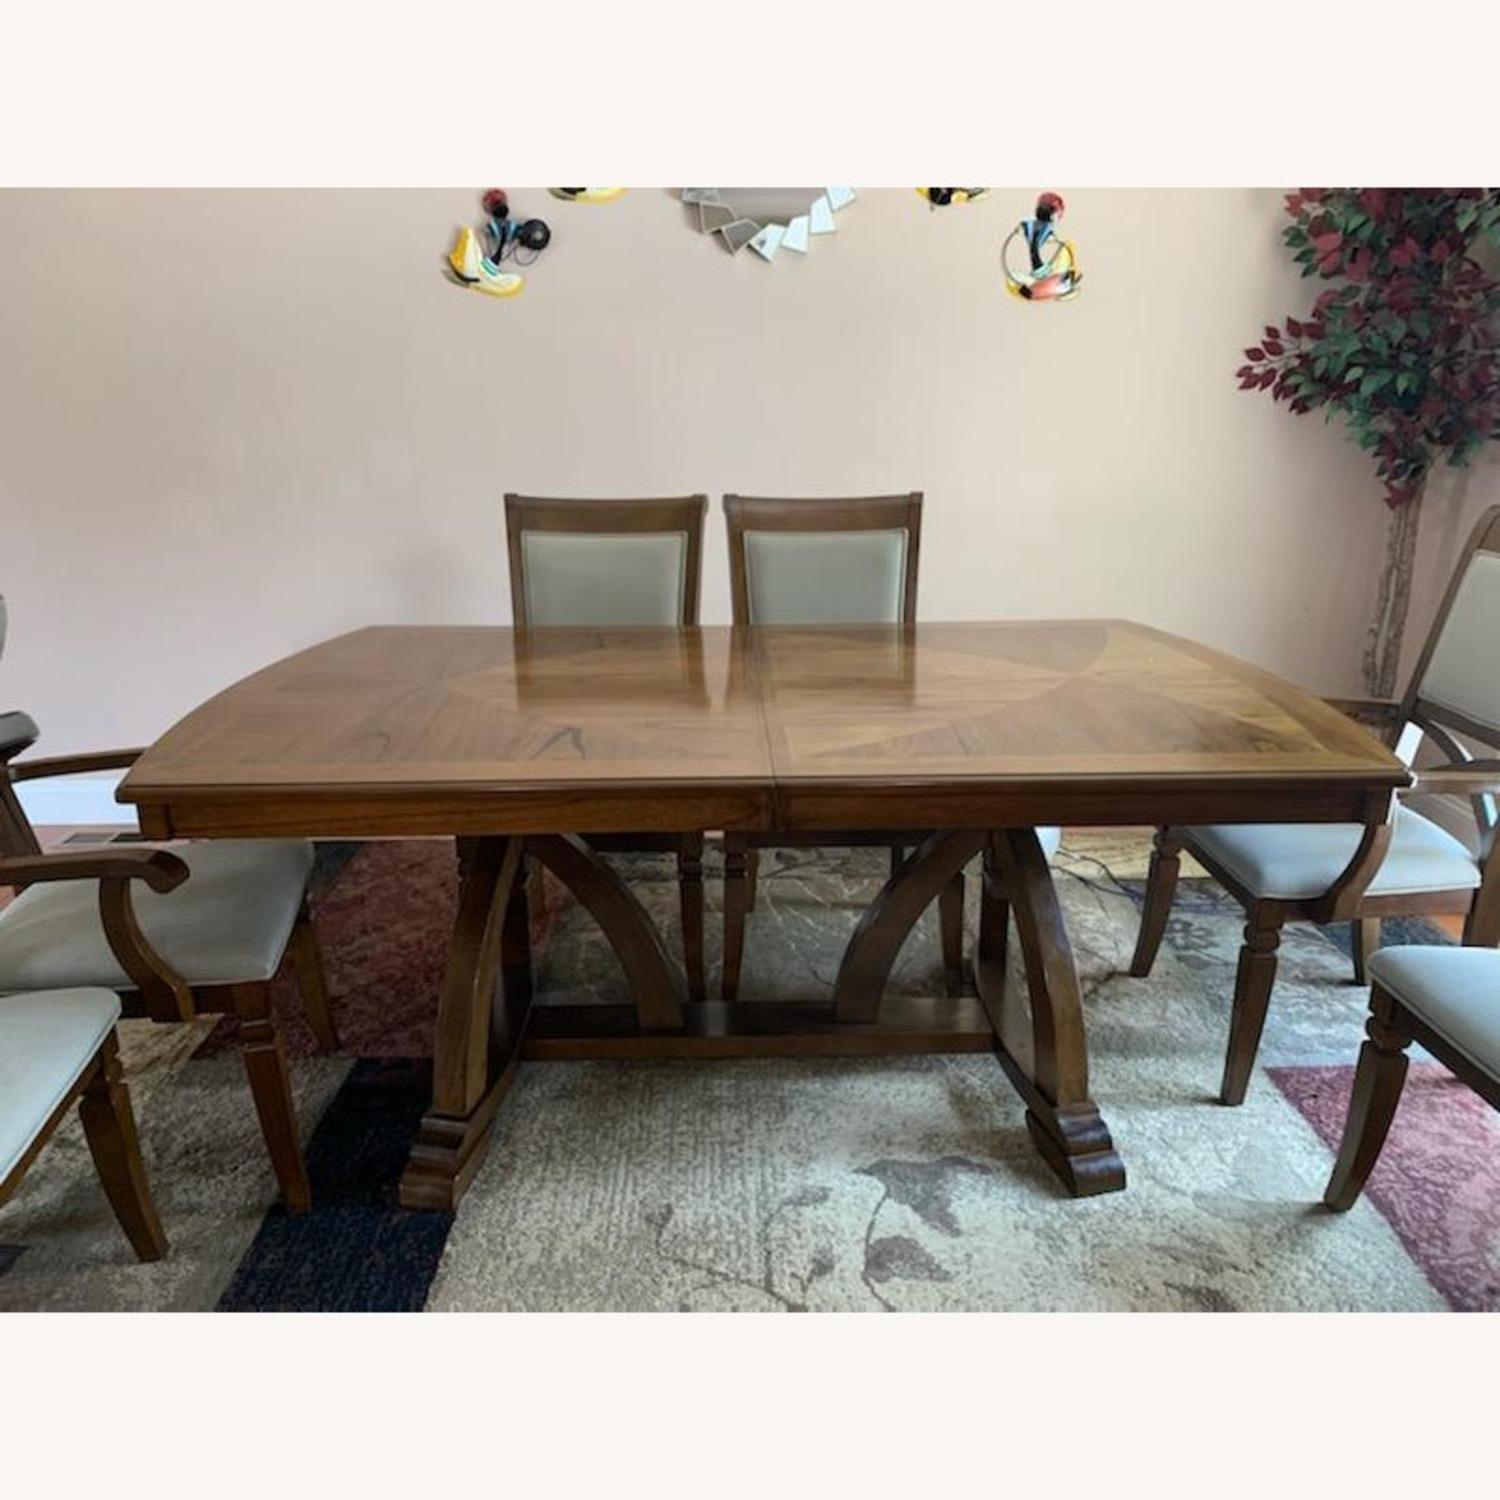 Raymour & Flanigan Dining Table set with 6 chairs - image-3